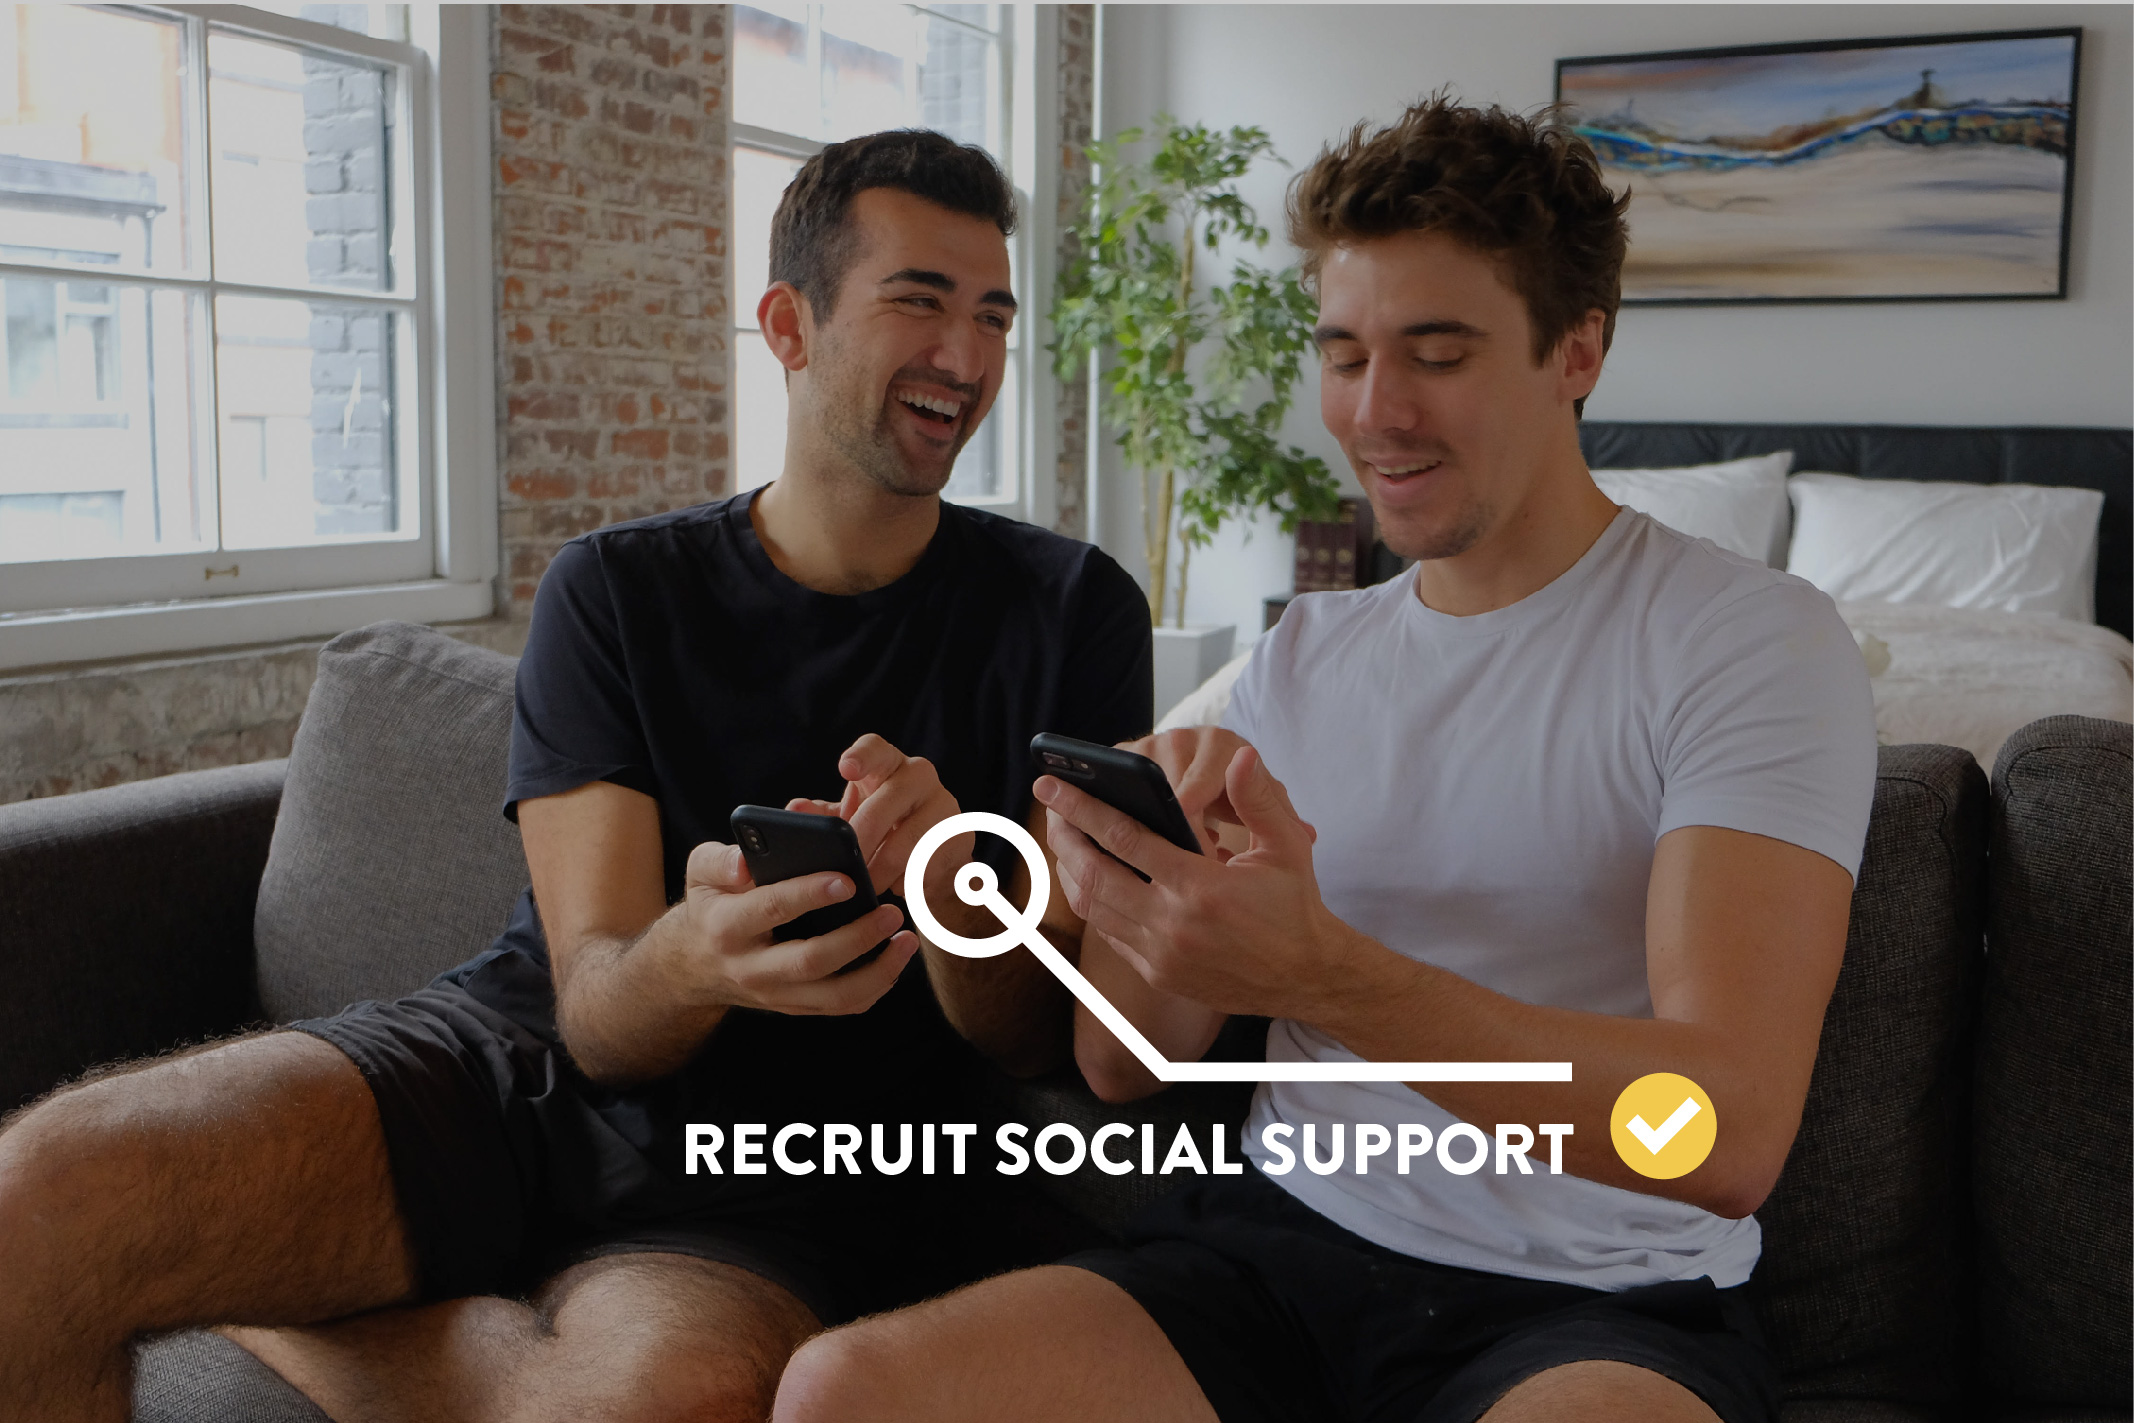 habit-coaching-trainerize-recruit-social-support